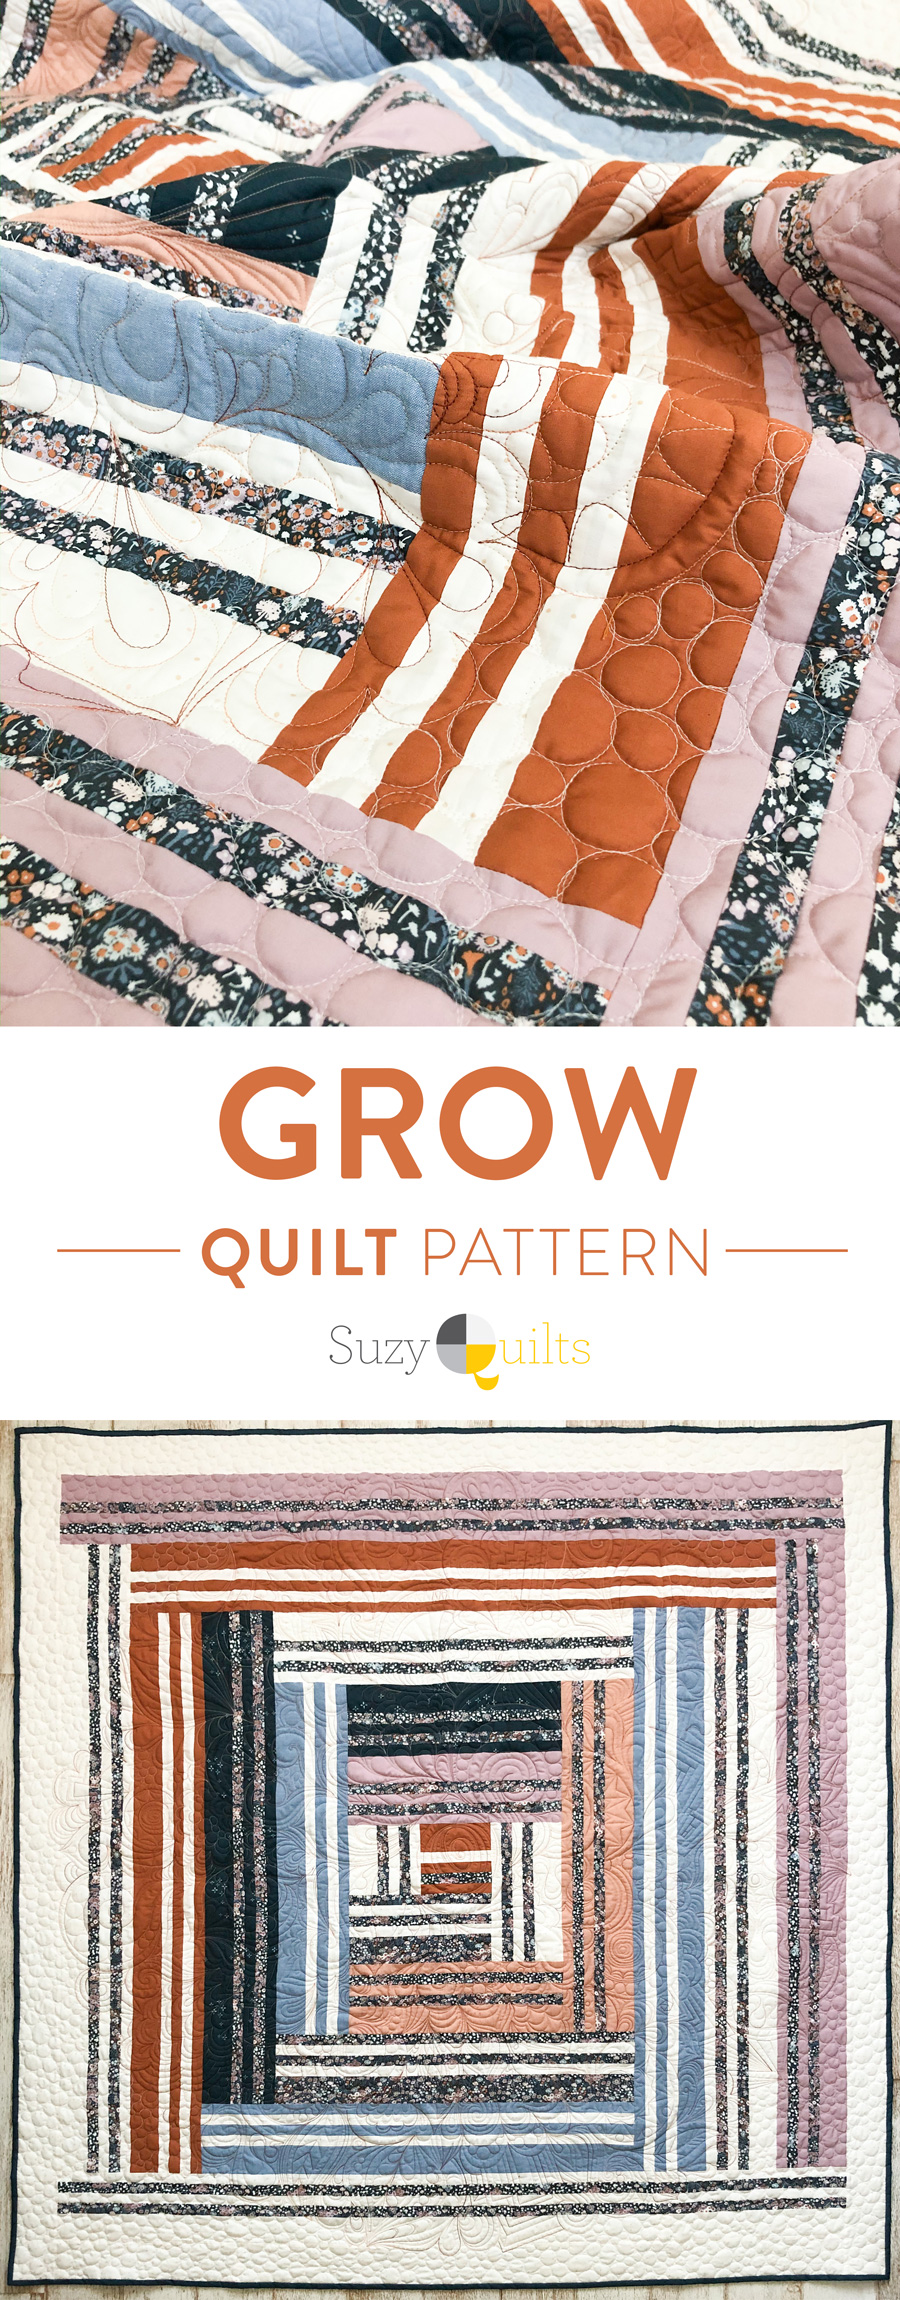 Grow is the first design in a series of four quilts that represent the four seasons in a year, as well as seasons in our lives. It includes fabric requirements and instructions for king, queen/full, twin, throw, and baby quilt sizes. This is an elegant modern medallion quilt. suzyquilts.com #modernquilting